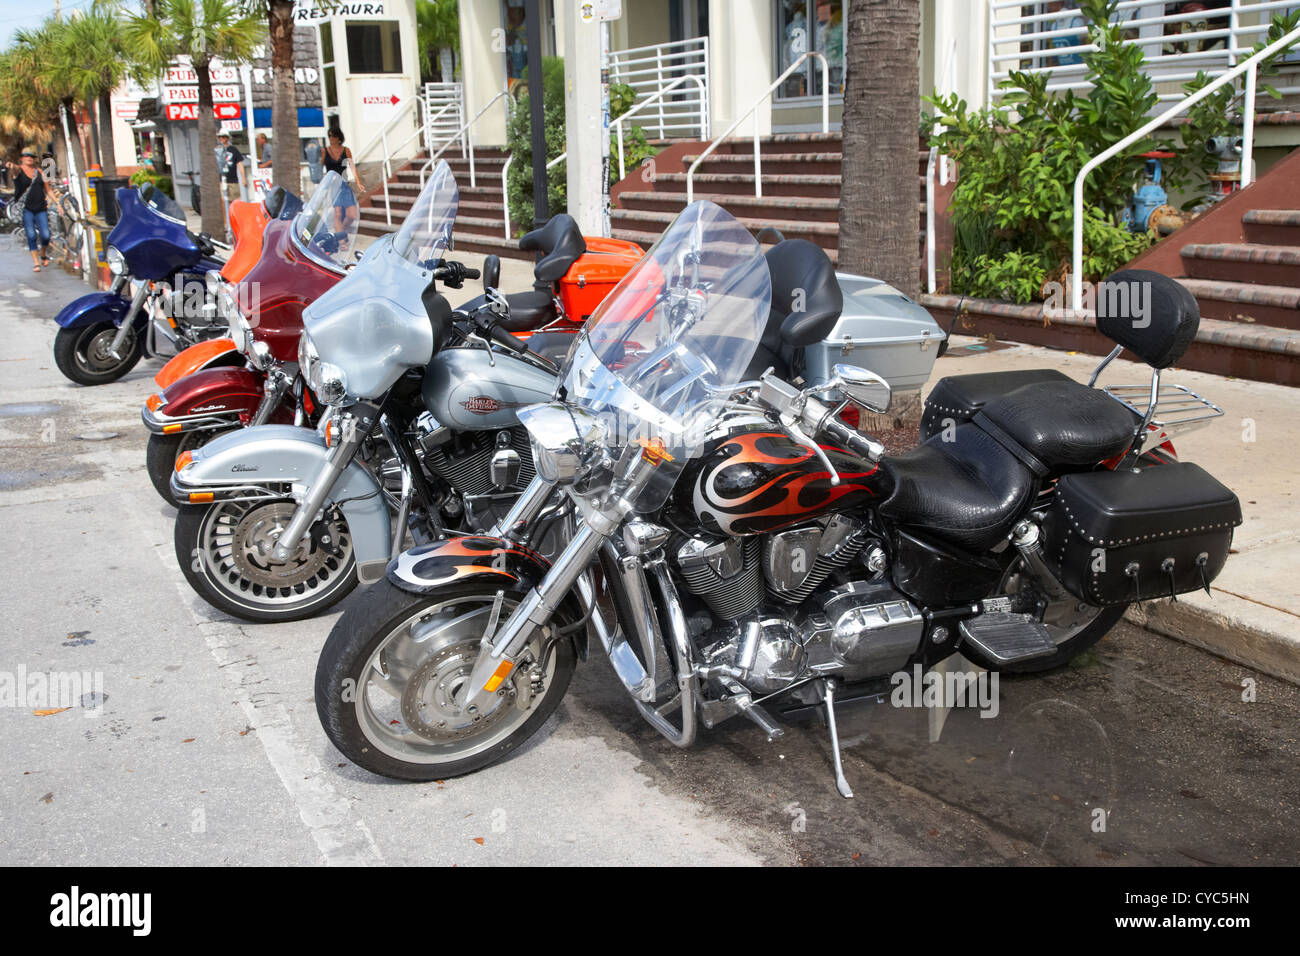 row of honda and harley davidson motorcycles parked in key west during bike week florida usa - Stock Image